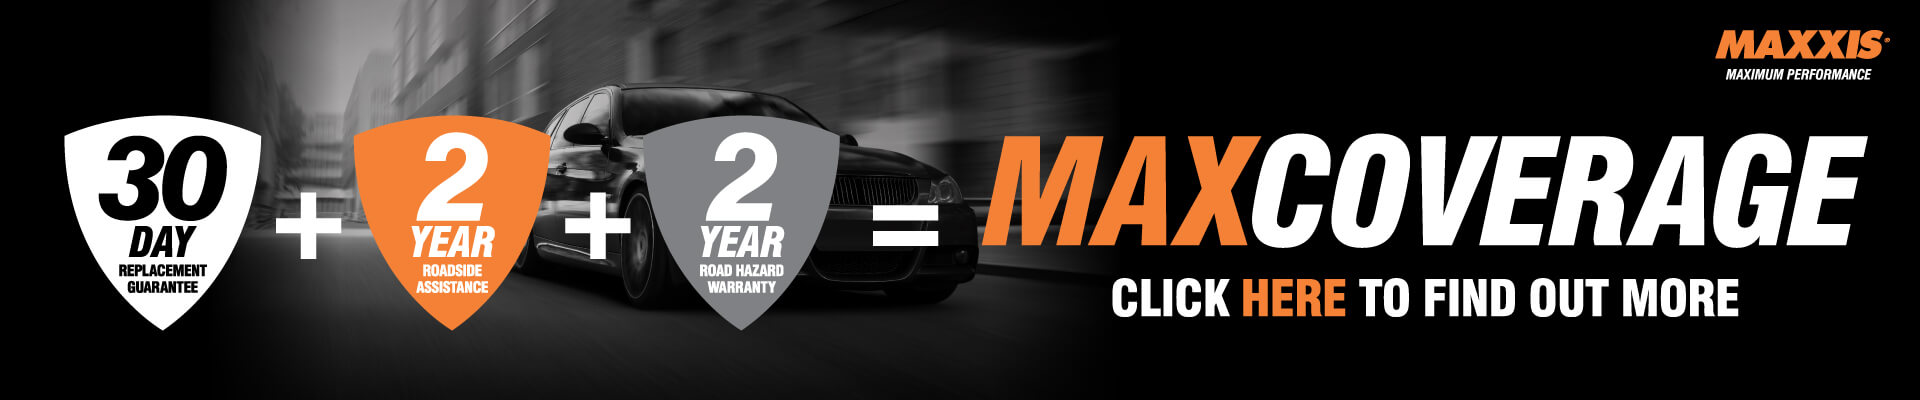 Maxxis Banner